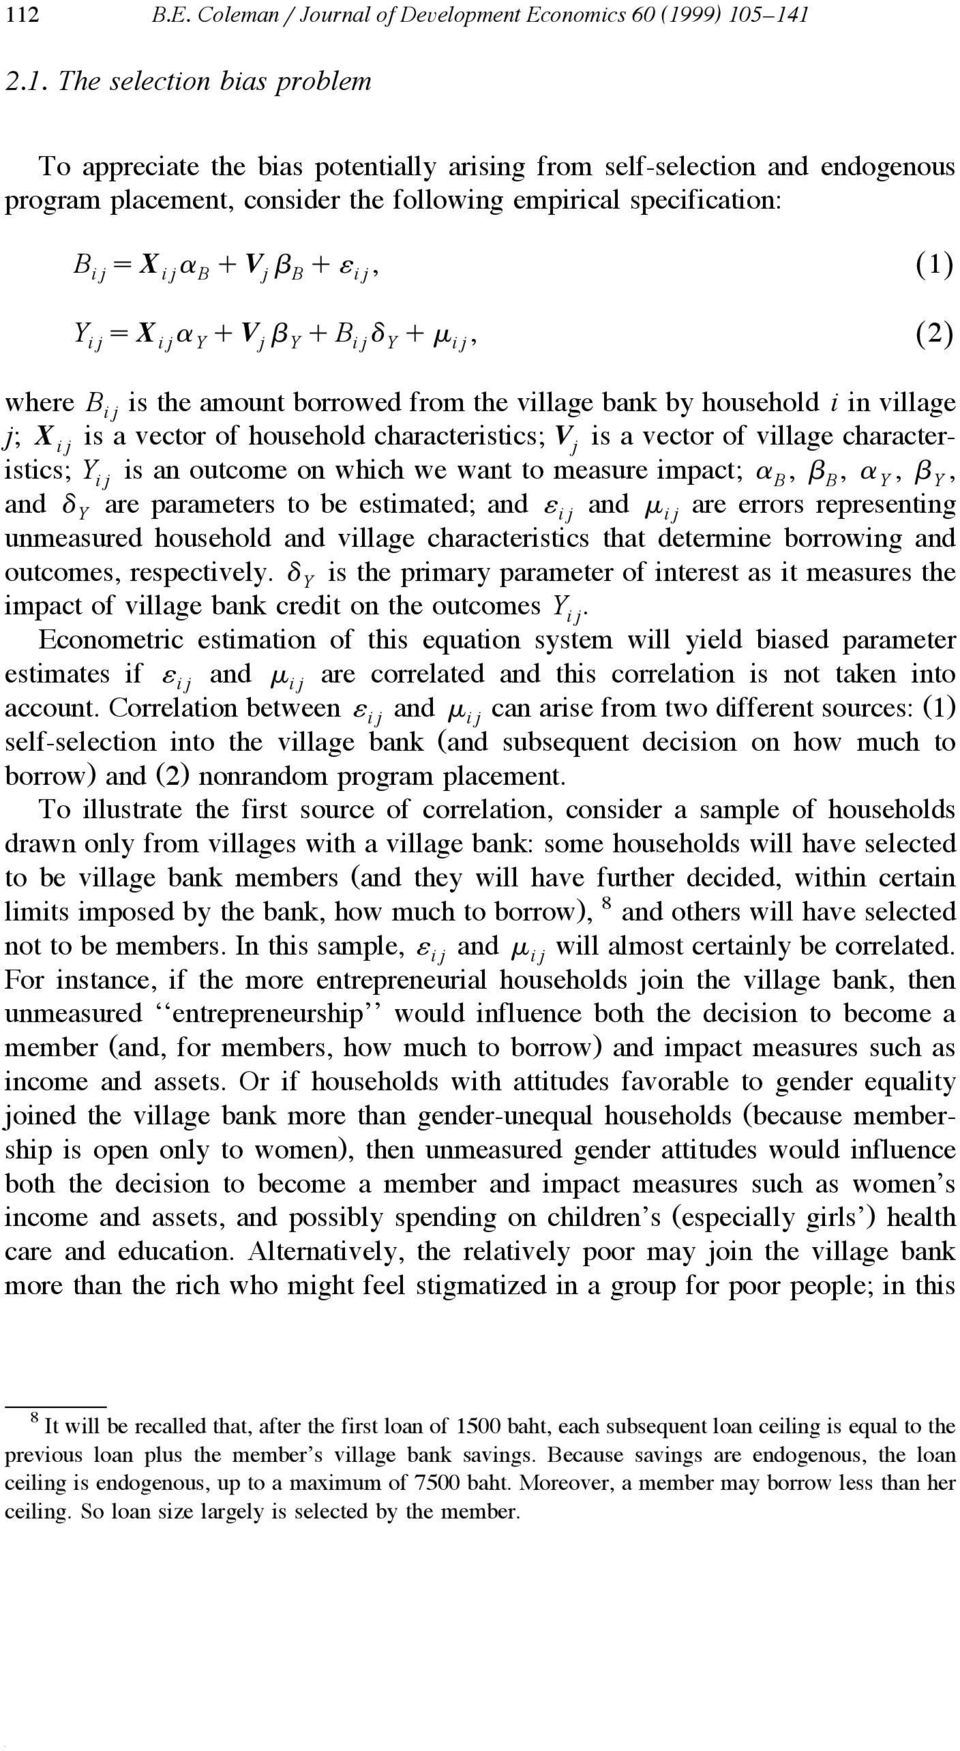 where Bi j is the amount borrowed from the village bank by household i in village j; X i j is a vector of household characteristics; Vj is a vector of village character- istics; Y is an outcome on